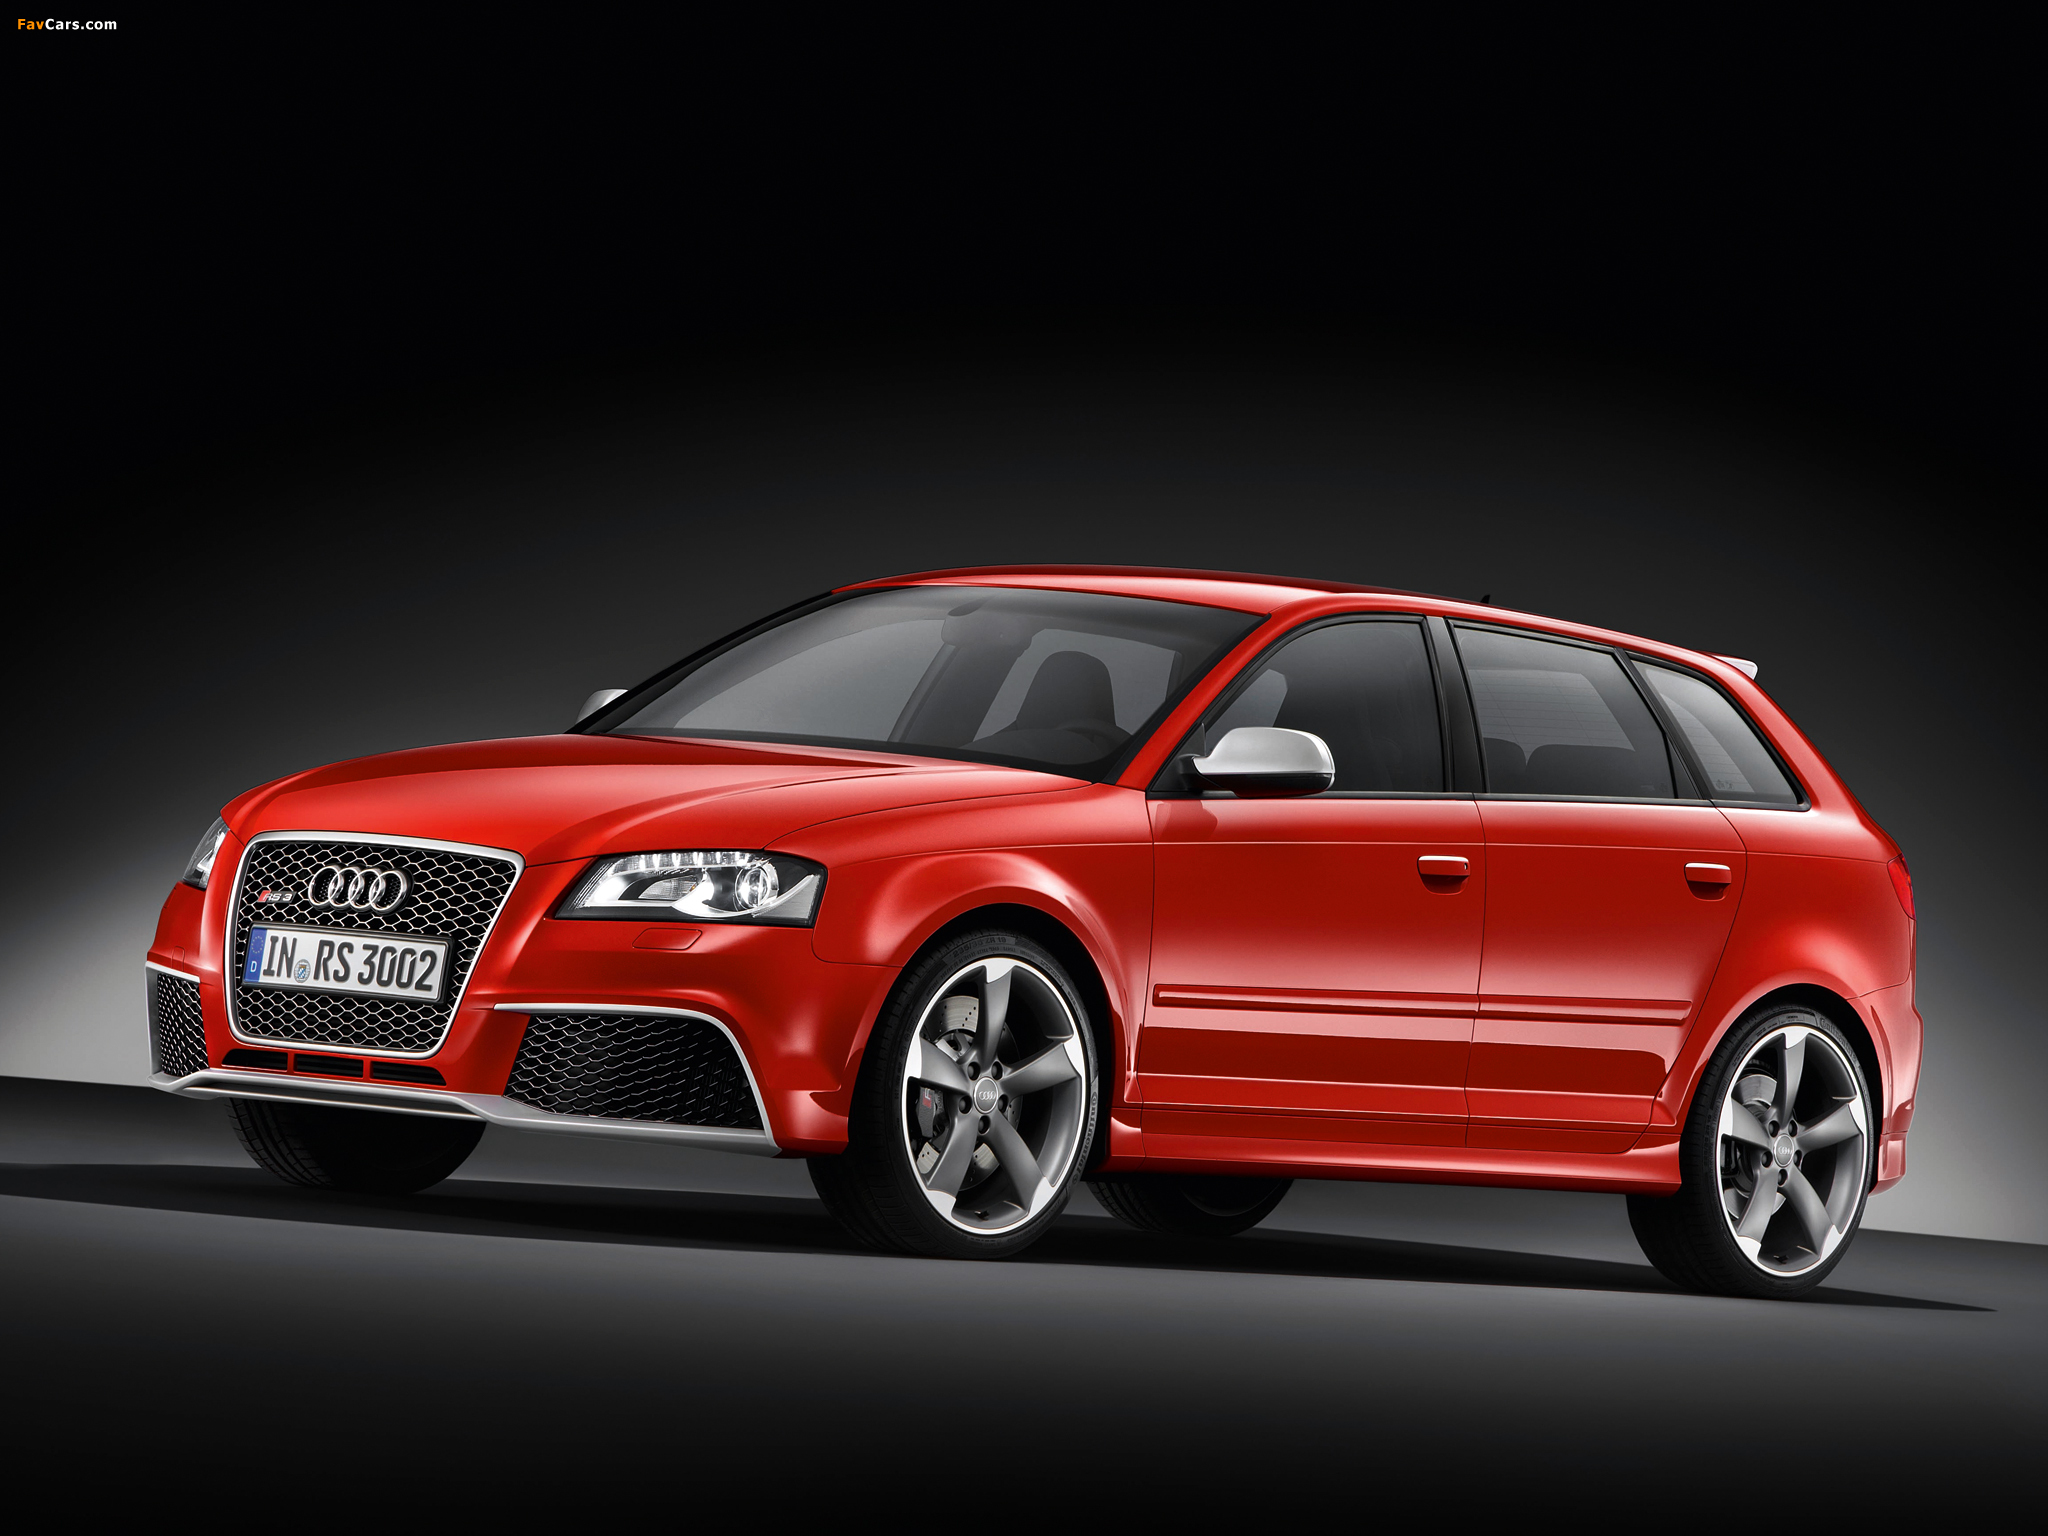 audi rs3 sportback (8pa) 2010 wallpaper #2